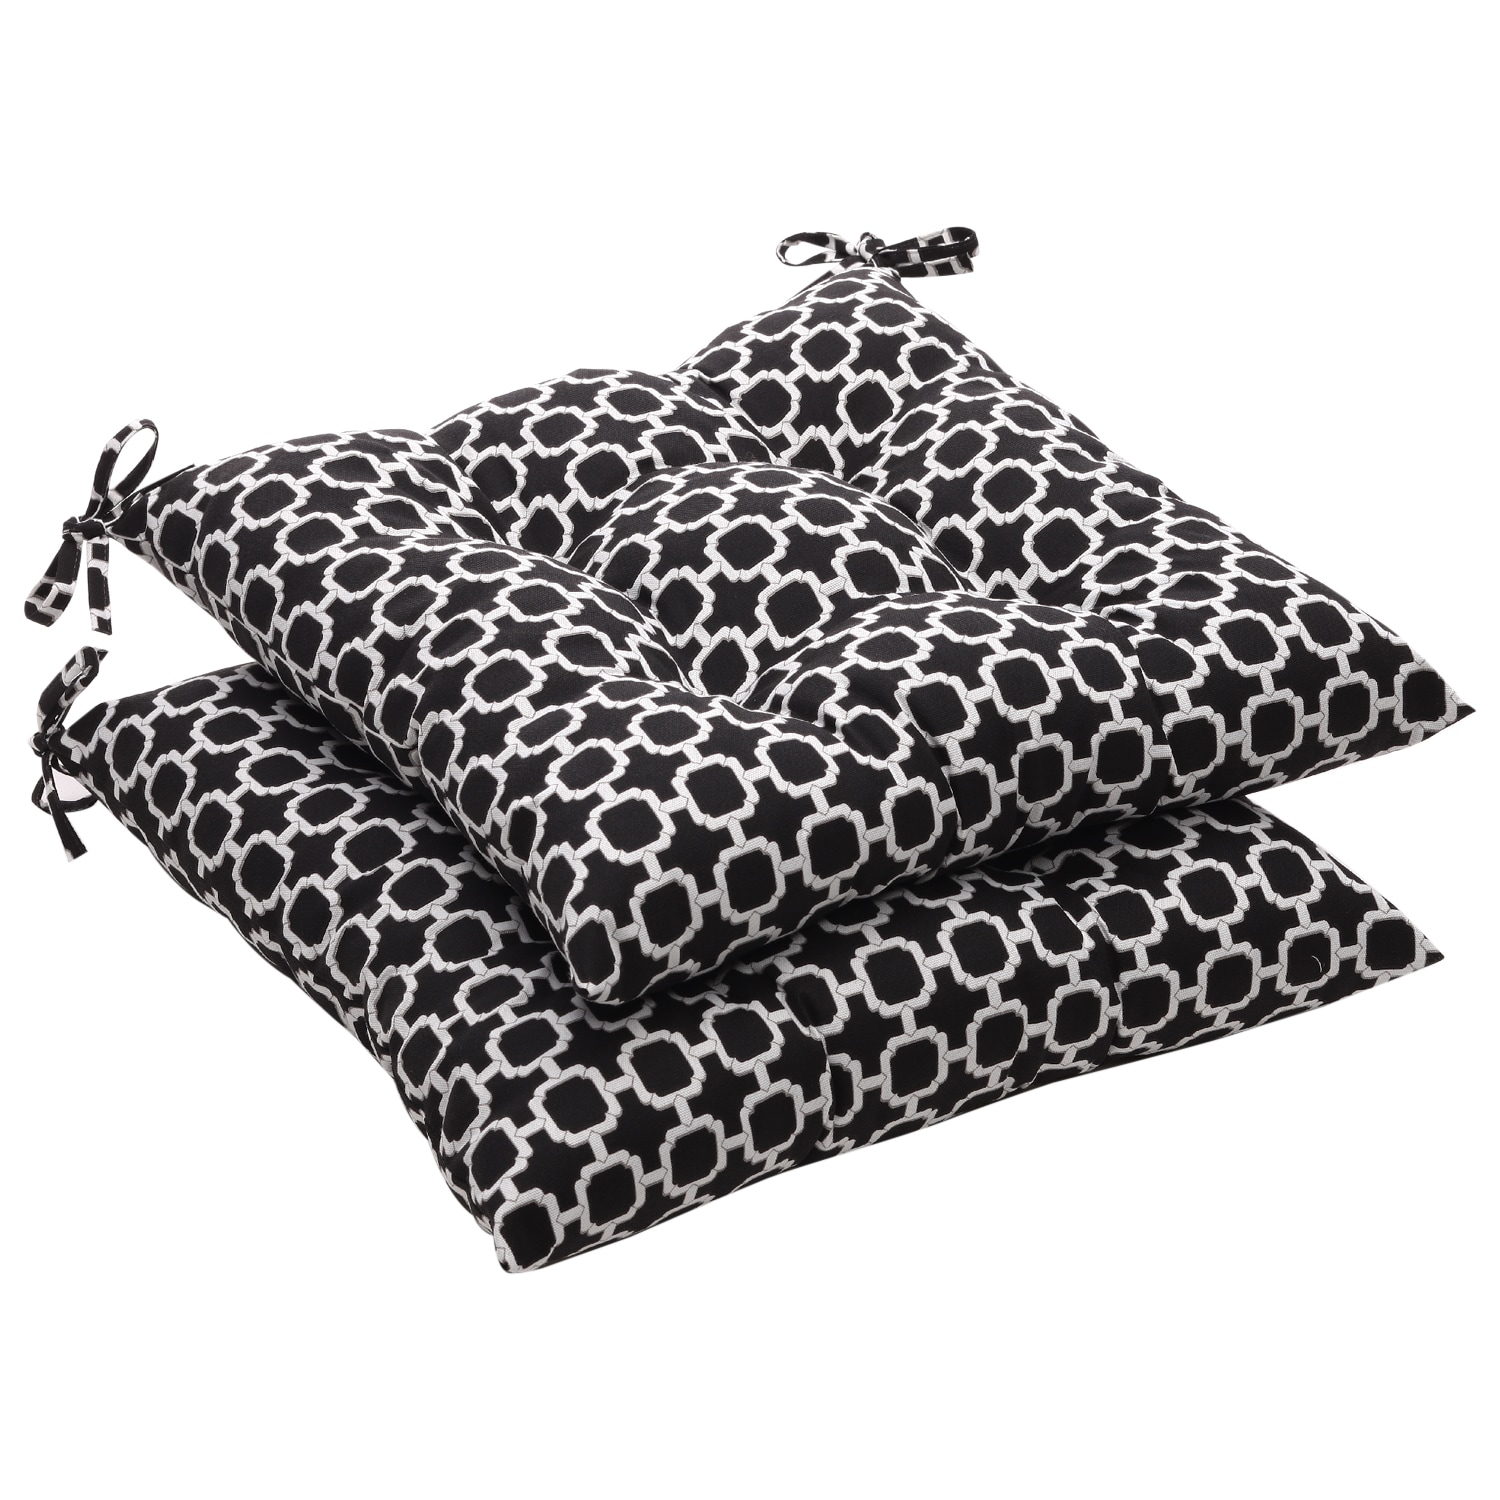 Pillow Perfect Outdoor Tufted Black White Geometric Seat Cushion Set of 2 Free Shipping